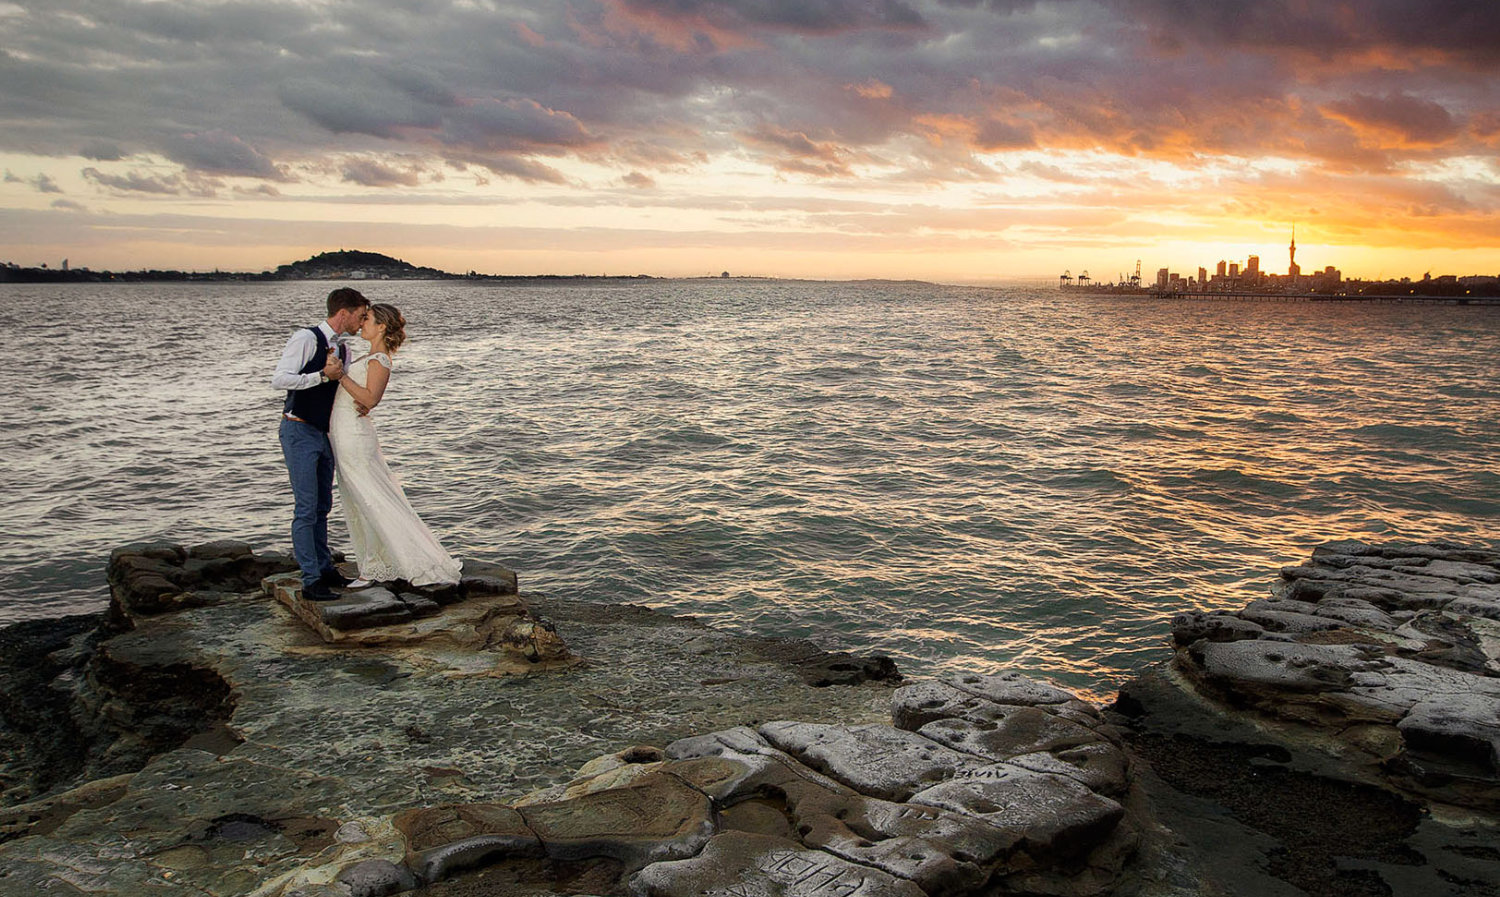 Bride and groom kissing on rocks by the sea with auckland city behind. Auckland wedding photographers sunset photo